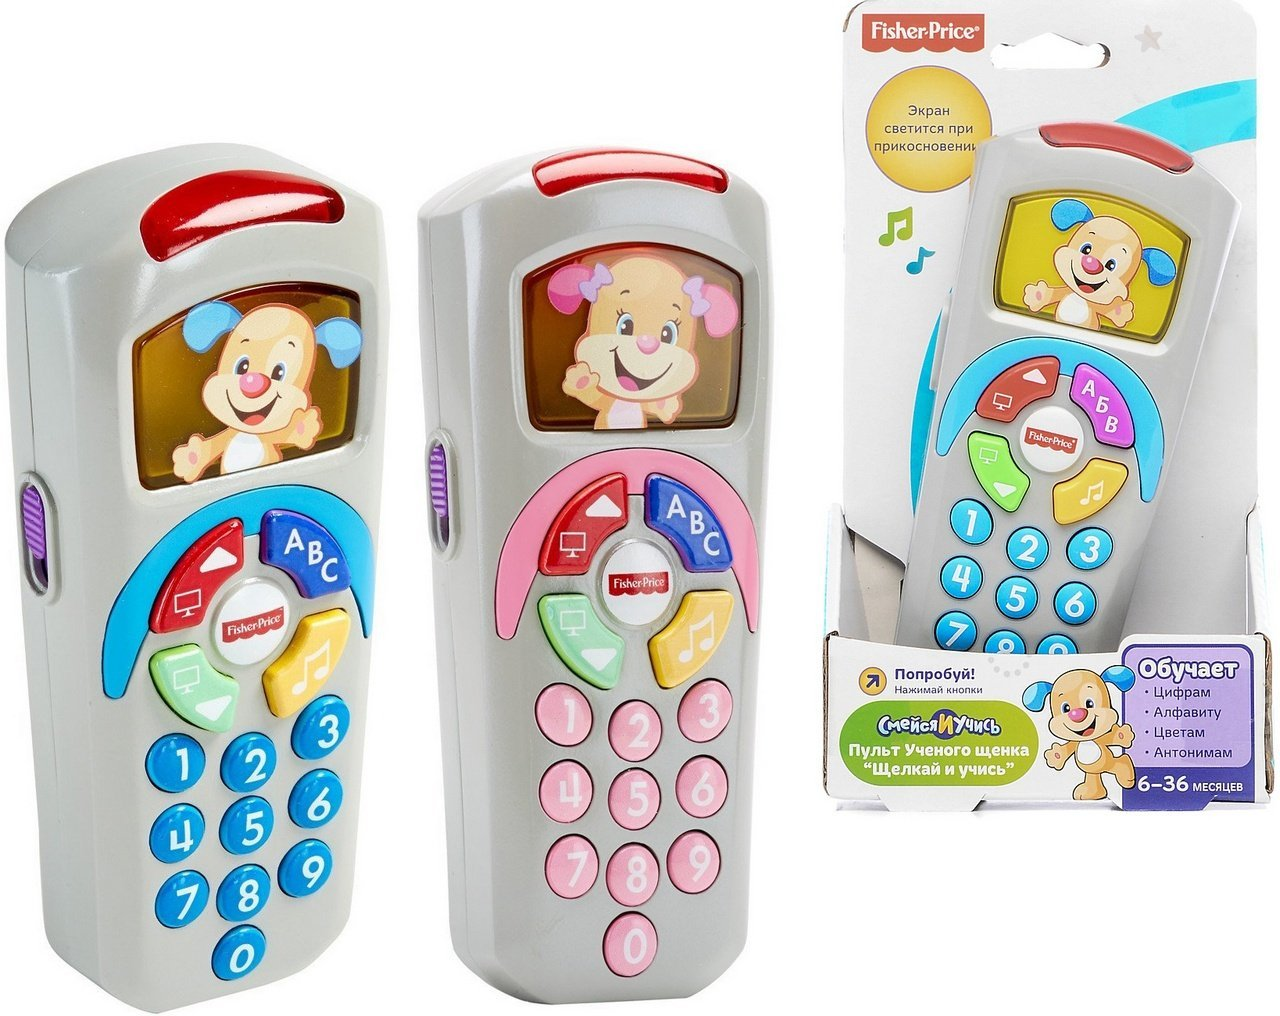 Fisher-Price DLK76